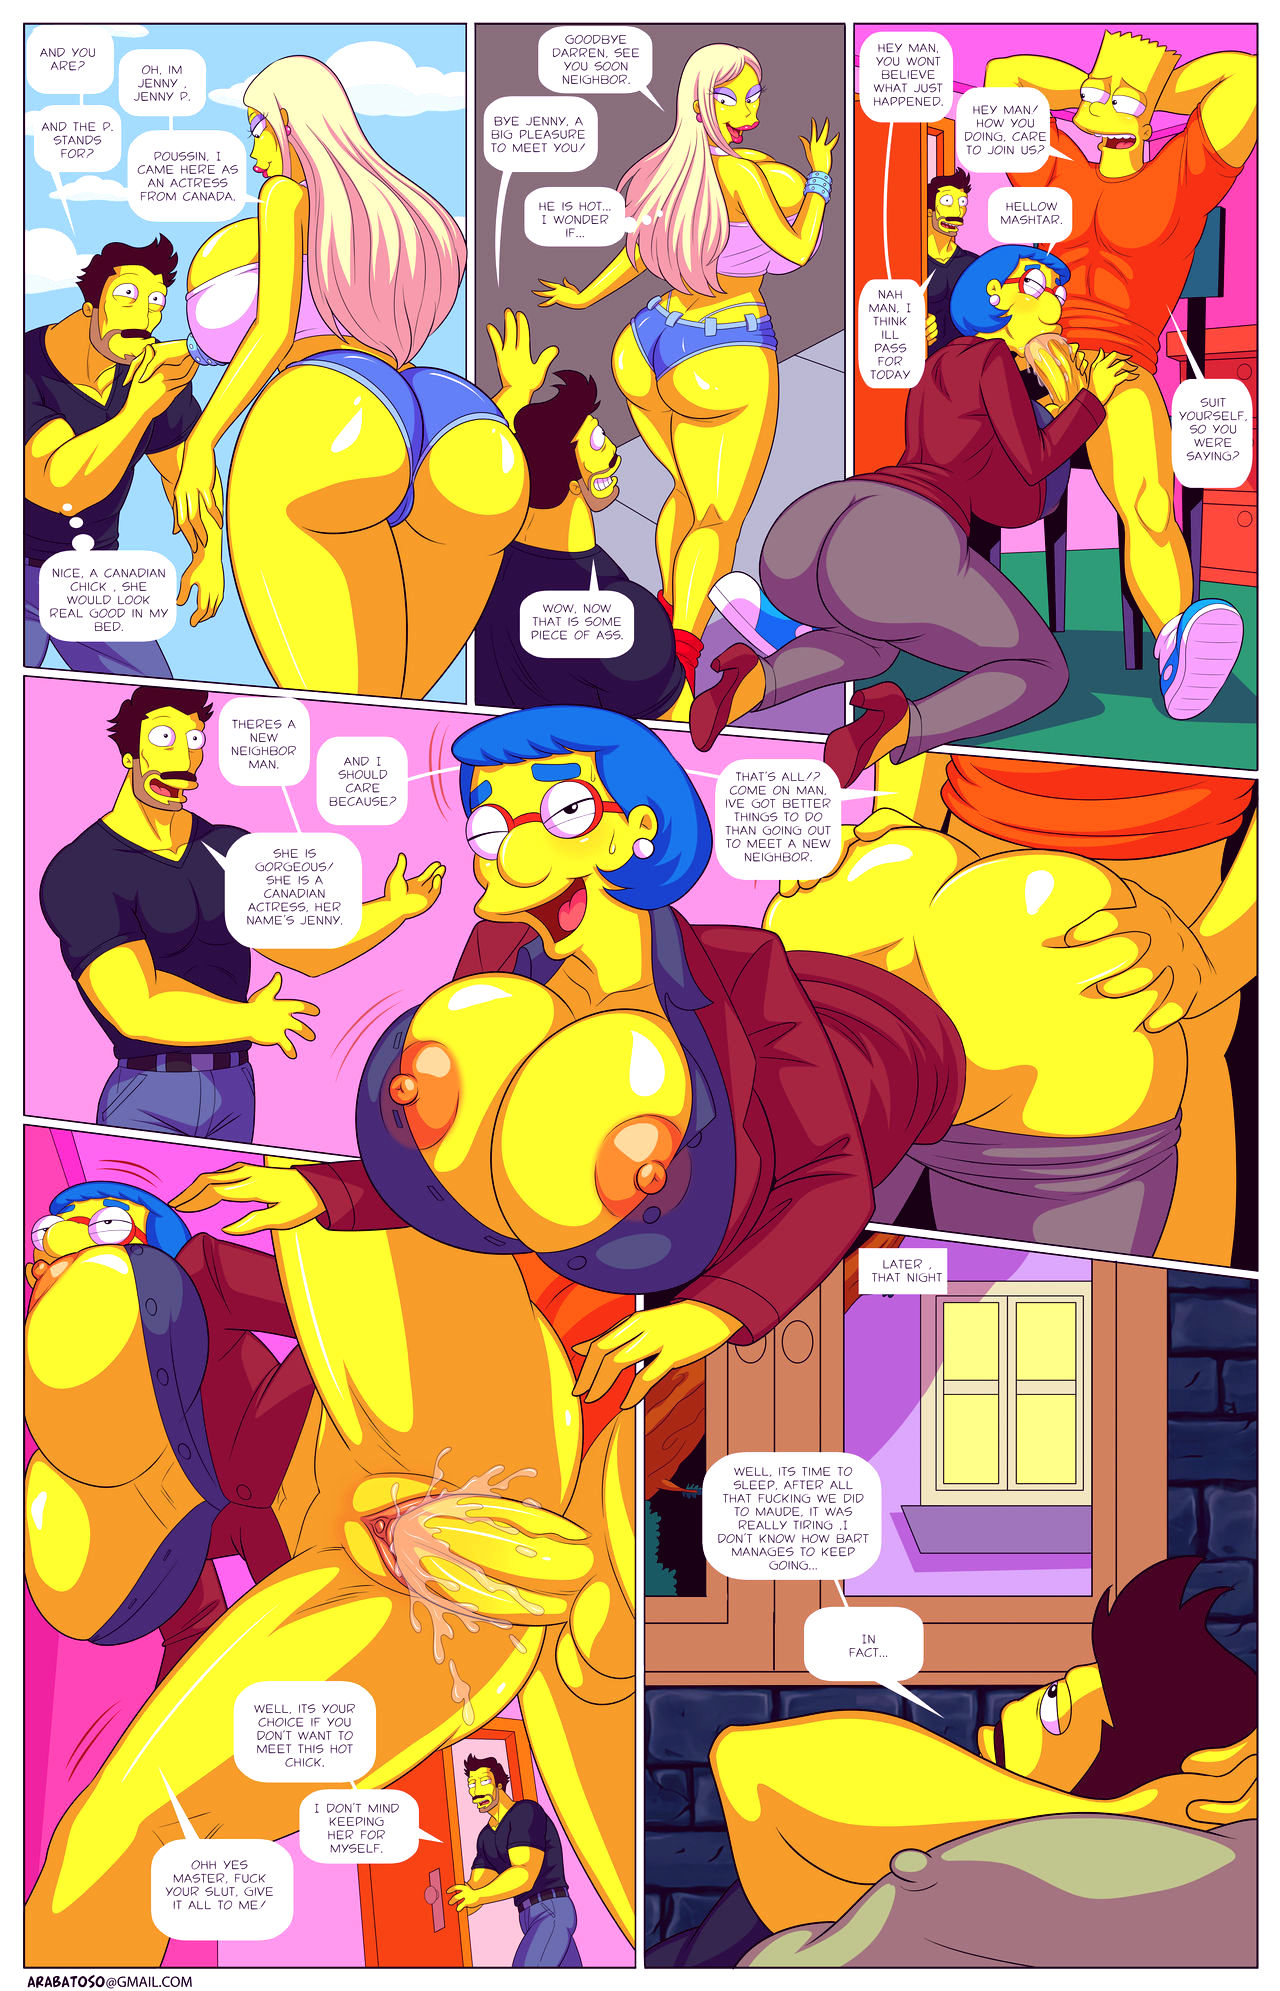 Darrens adventure or welcome to springfield porn comic picture 41